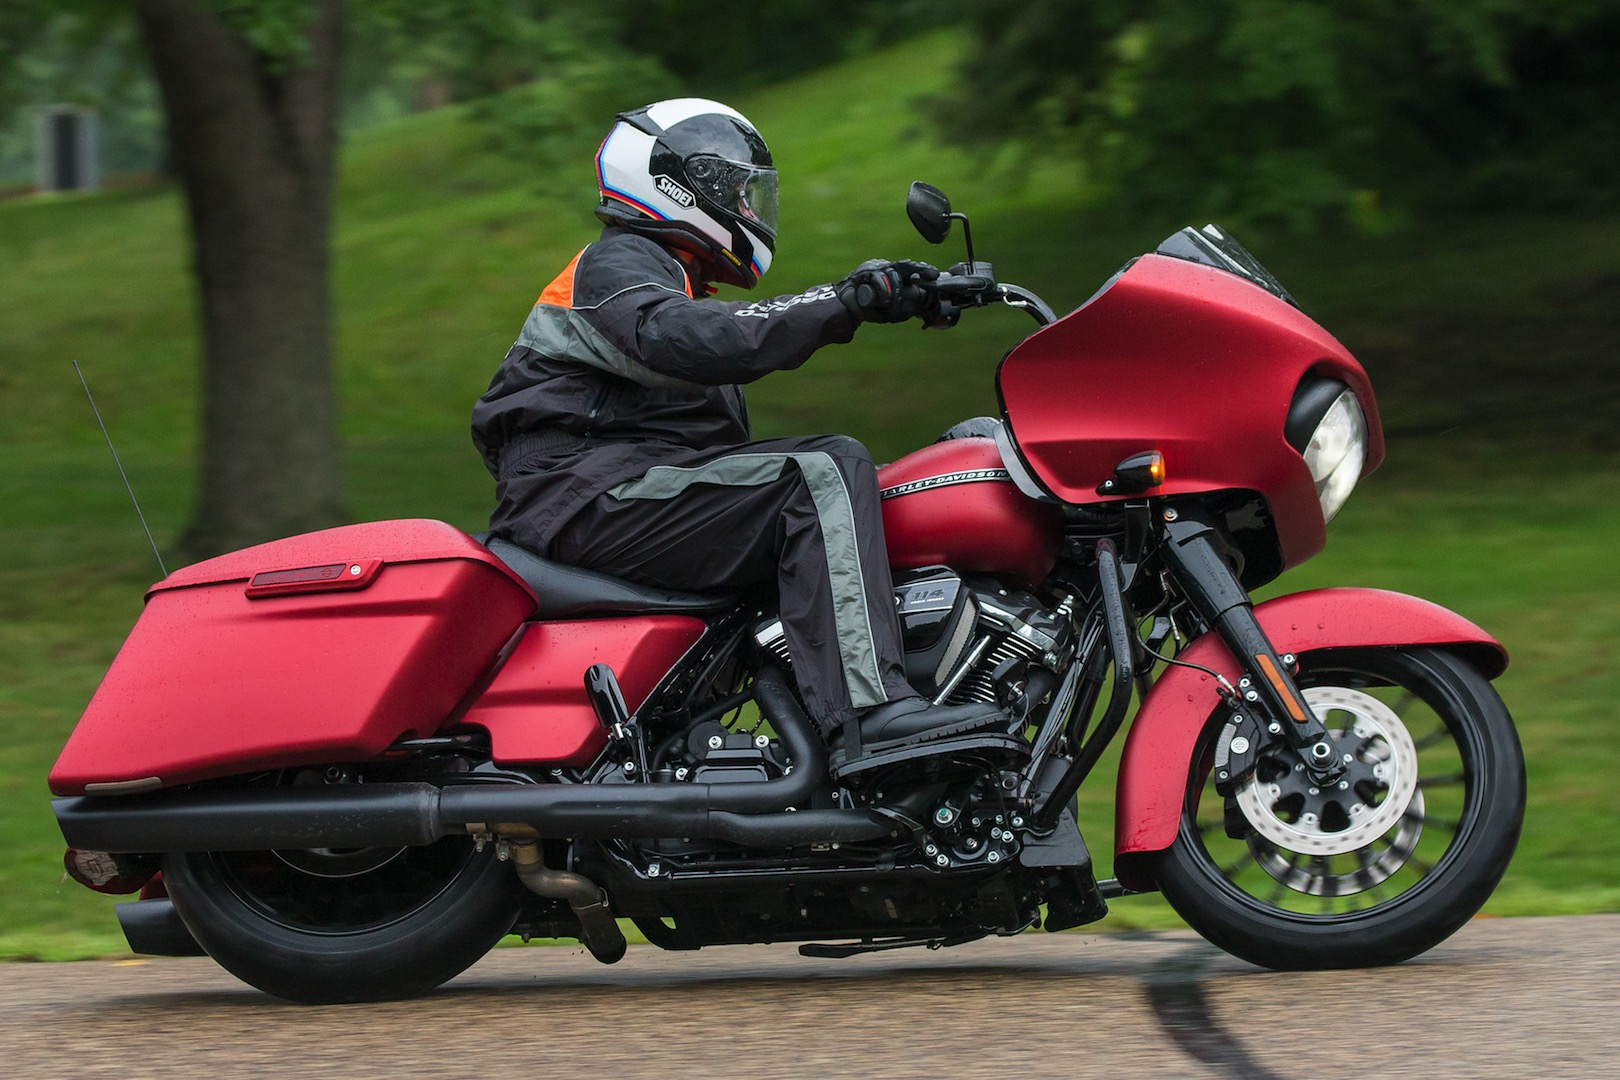 2019 Harley-Davidson Road Glide Special for sale